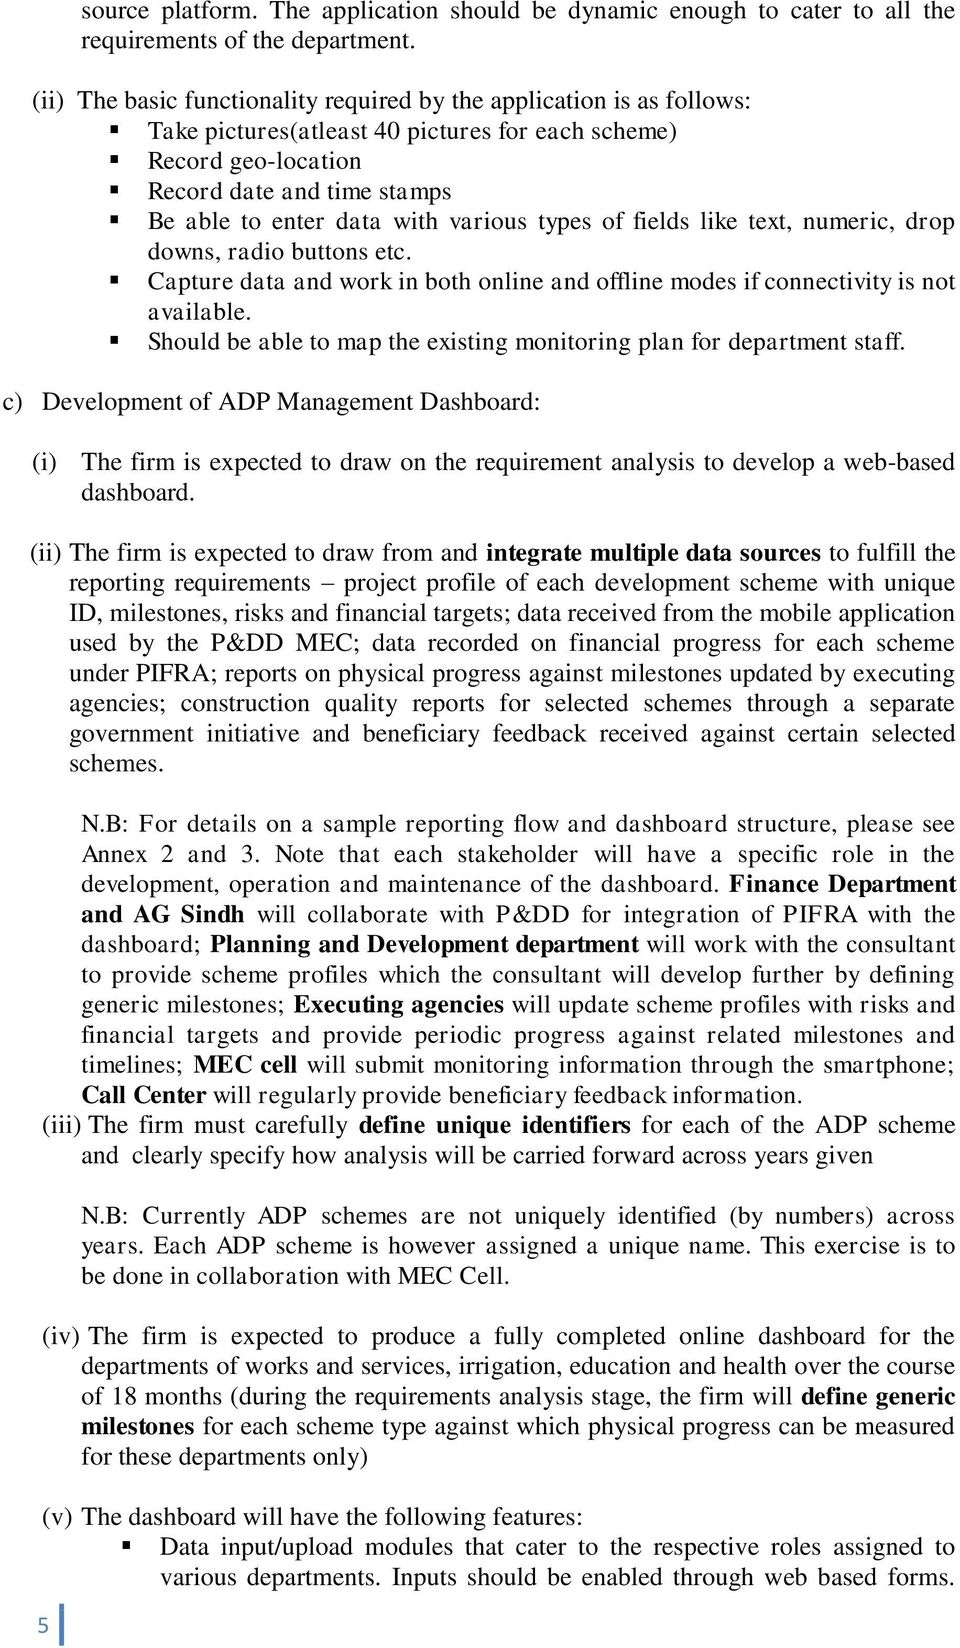 TERMS OF REFERENCE FOR DEVELOPMENT OF ADP MONITORING